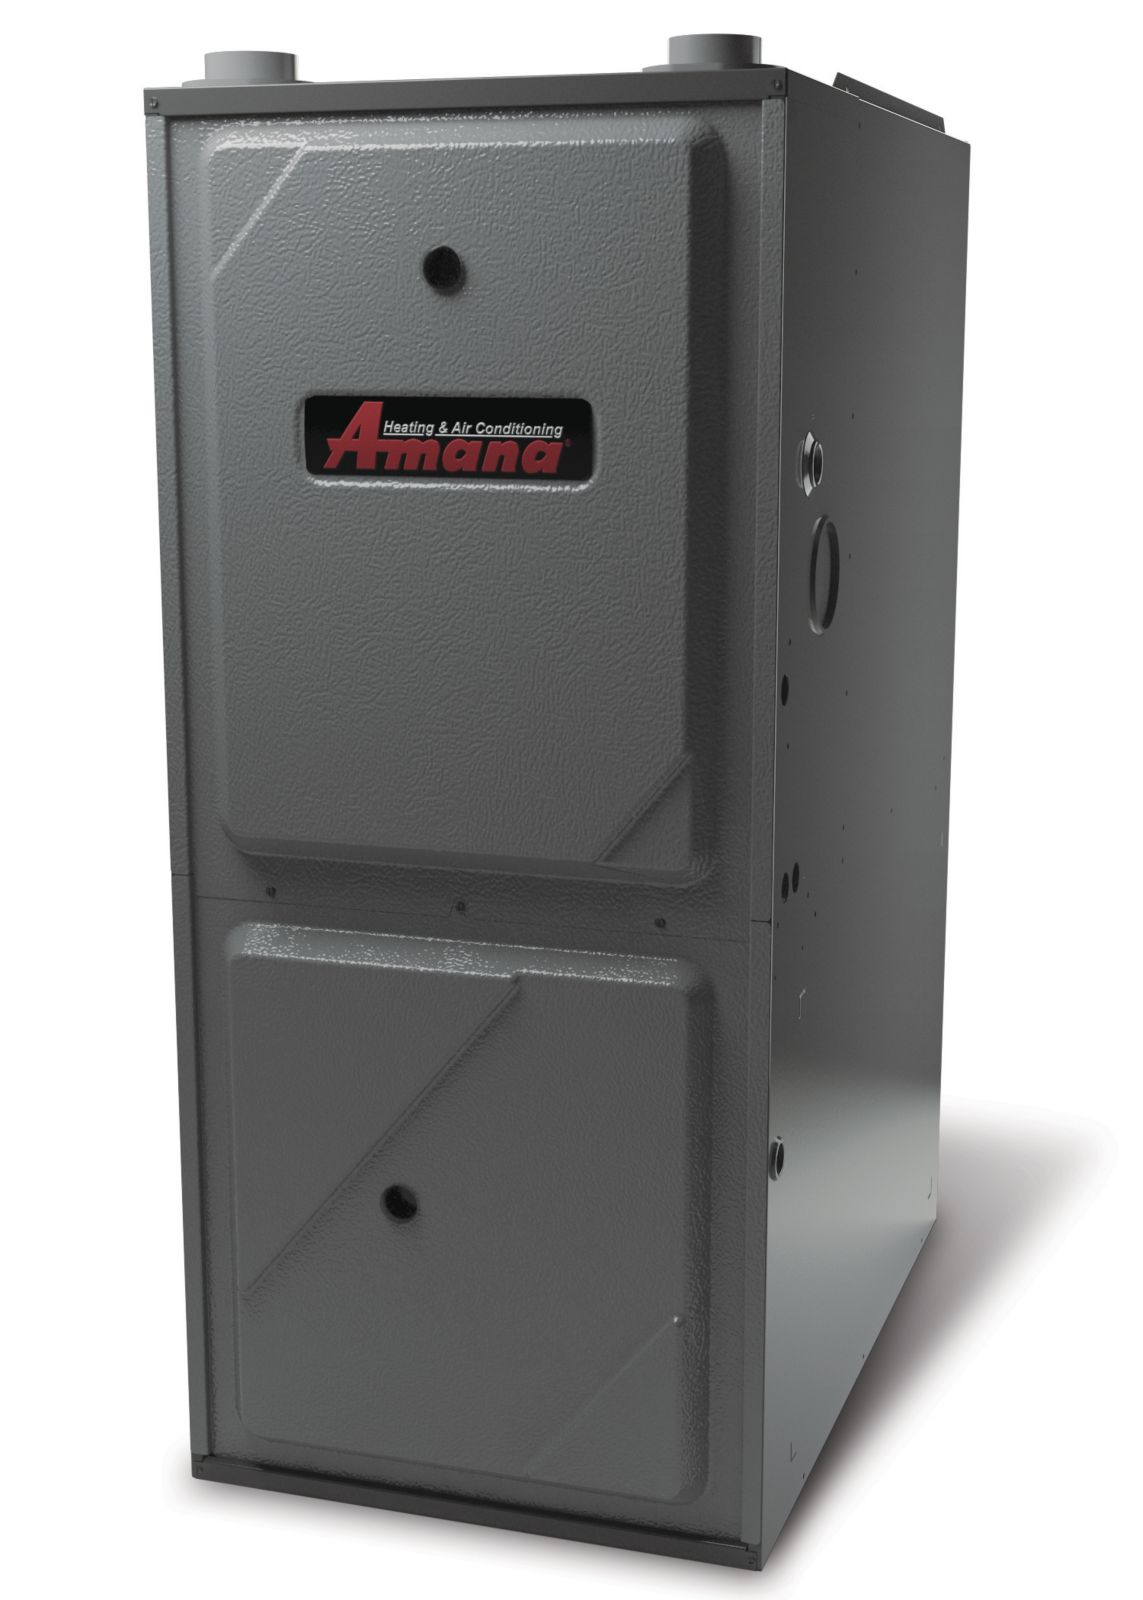 Amana Amvc Series Gas Furnace 96 Afue 80k Btu 2 Stage Dryer Wiring Diagram Upflow Horizontal 21 Cabinet